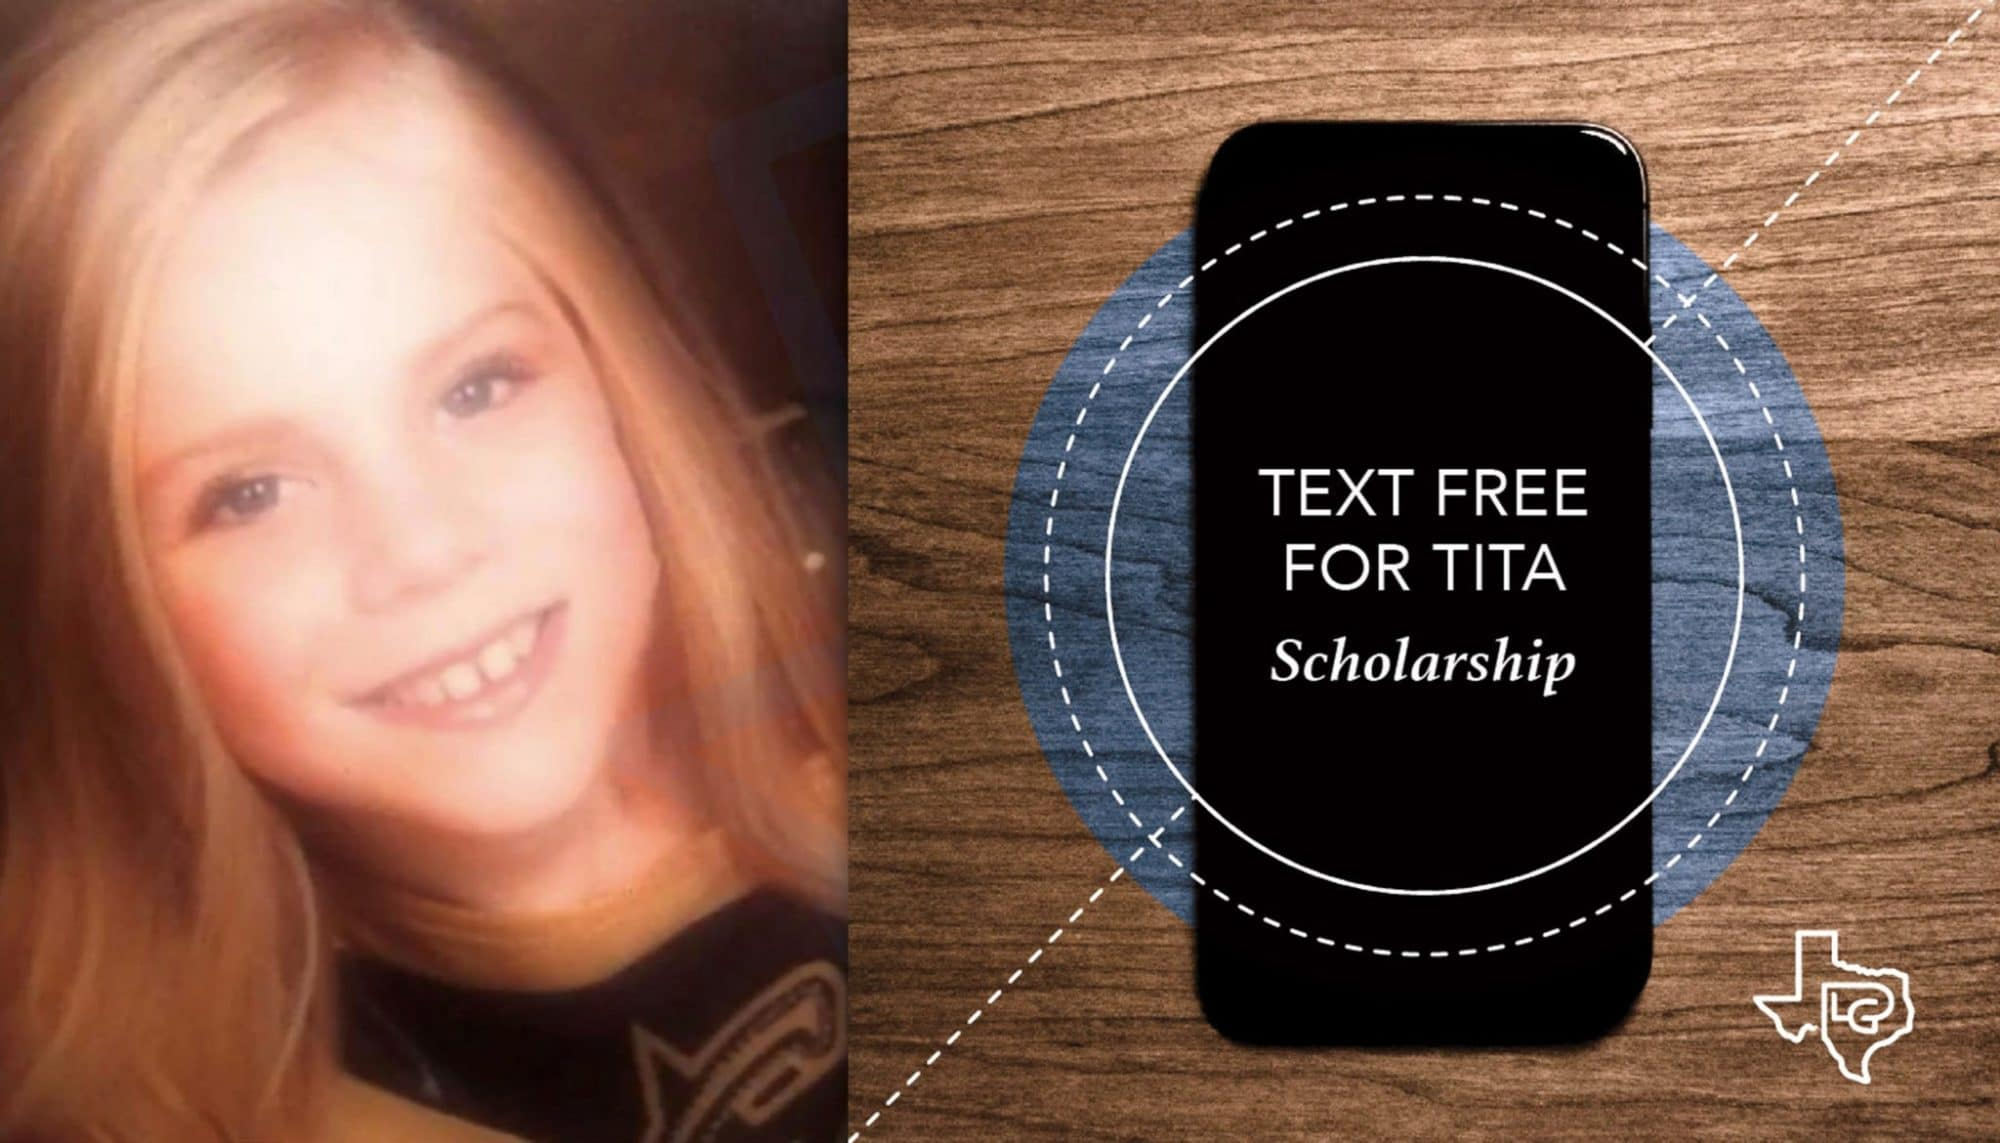 Text Free For Tita Scholarship